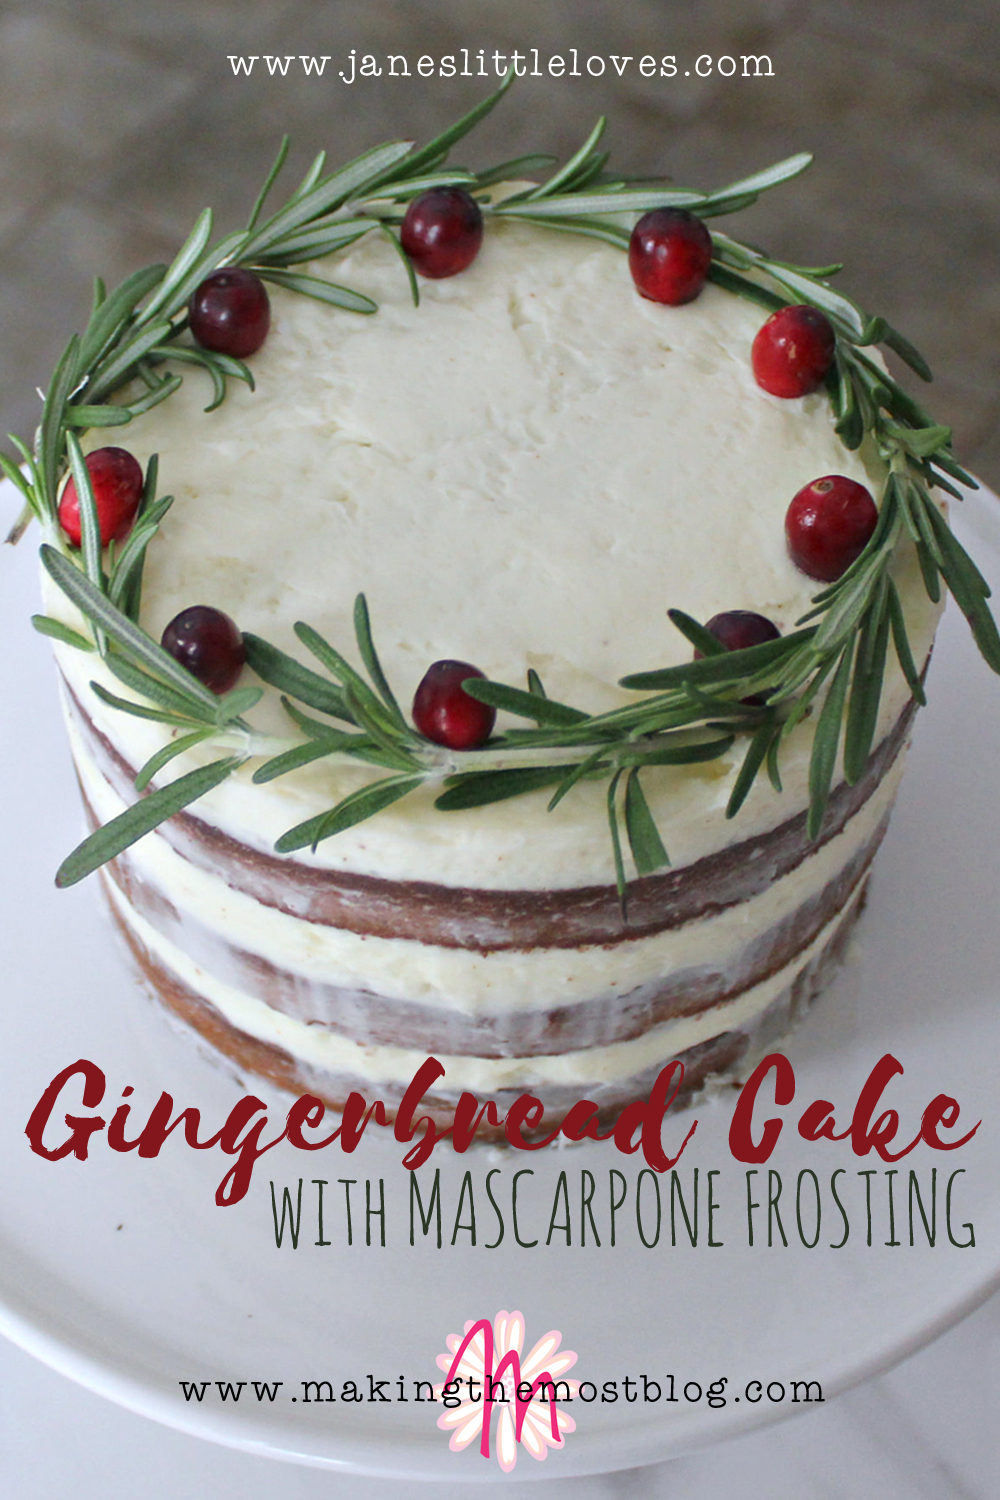 Gingerbread Cake with Marscapone Frosting Recipe   Making the Most Blog